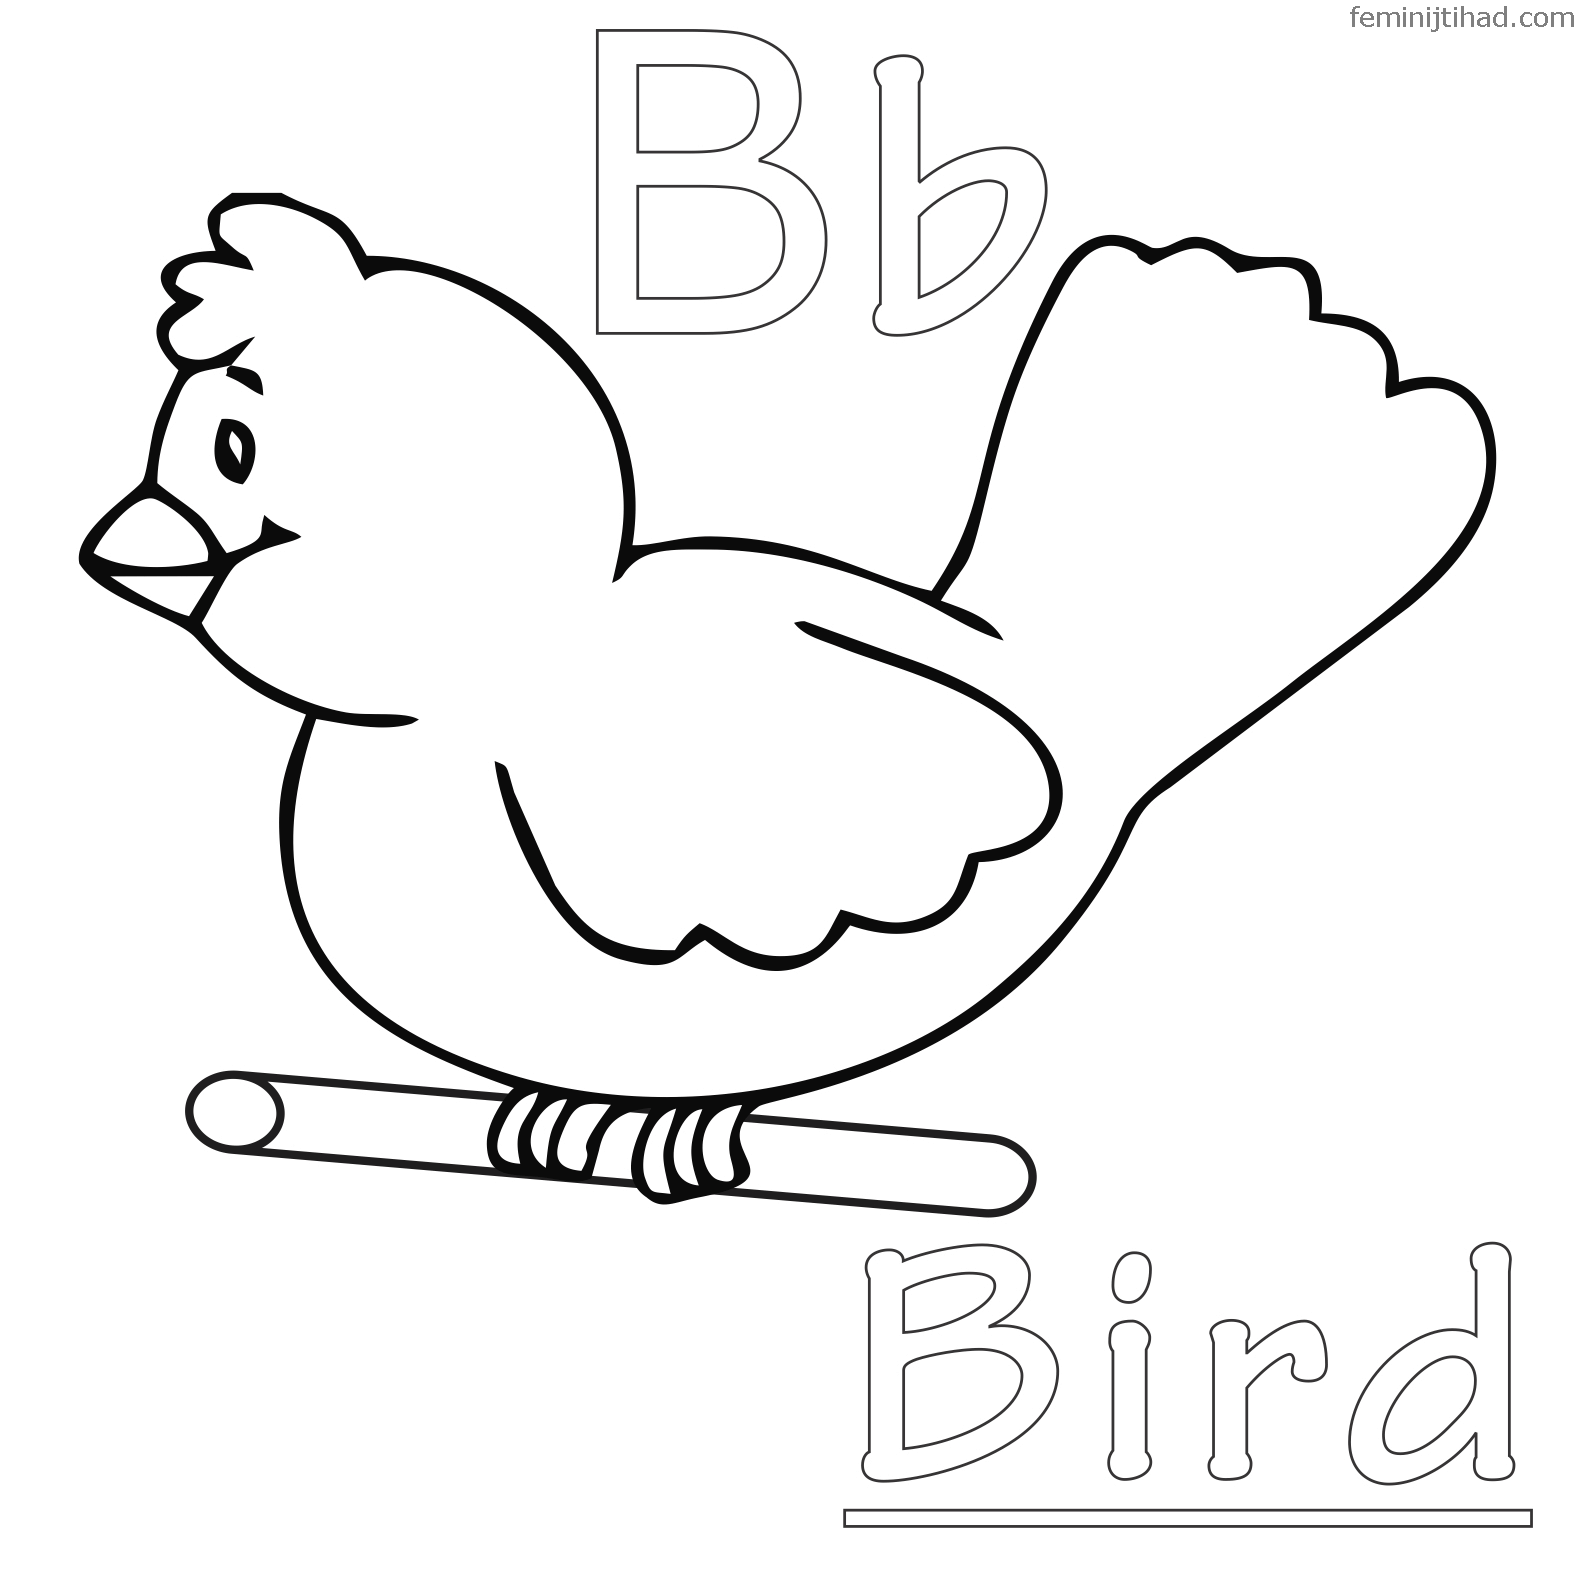 Free Bird Coloring Pages Pdf Free Coloring Sheets Bird Coloring Pages Coloring Pages Animal Coloring Pages